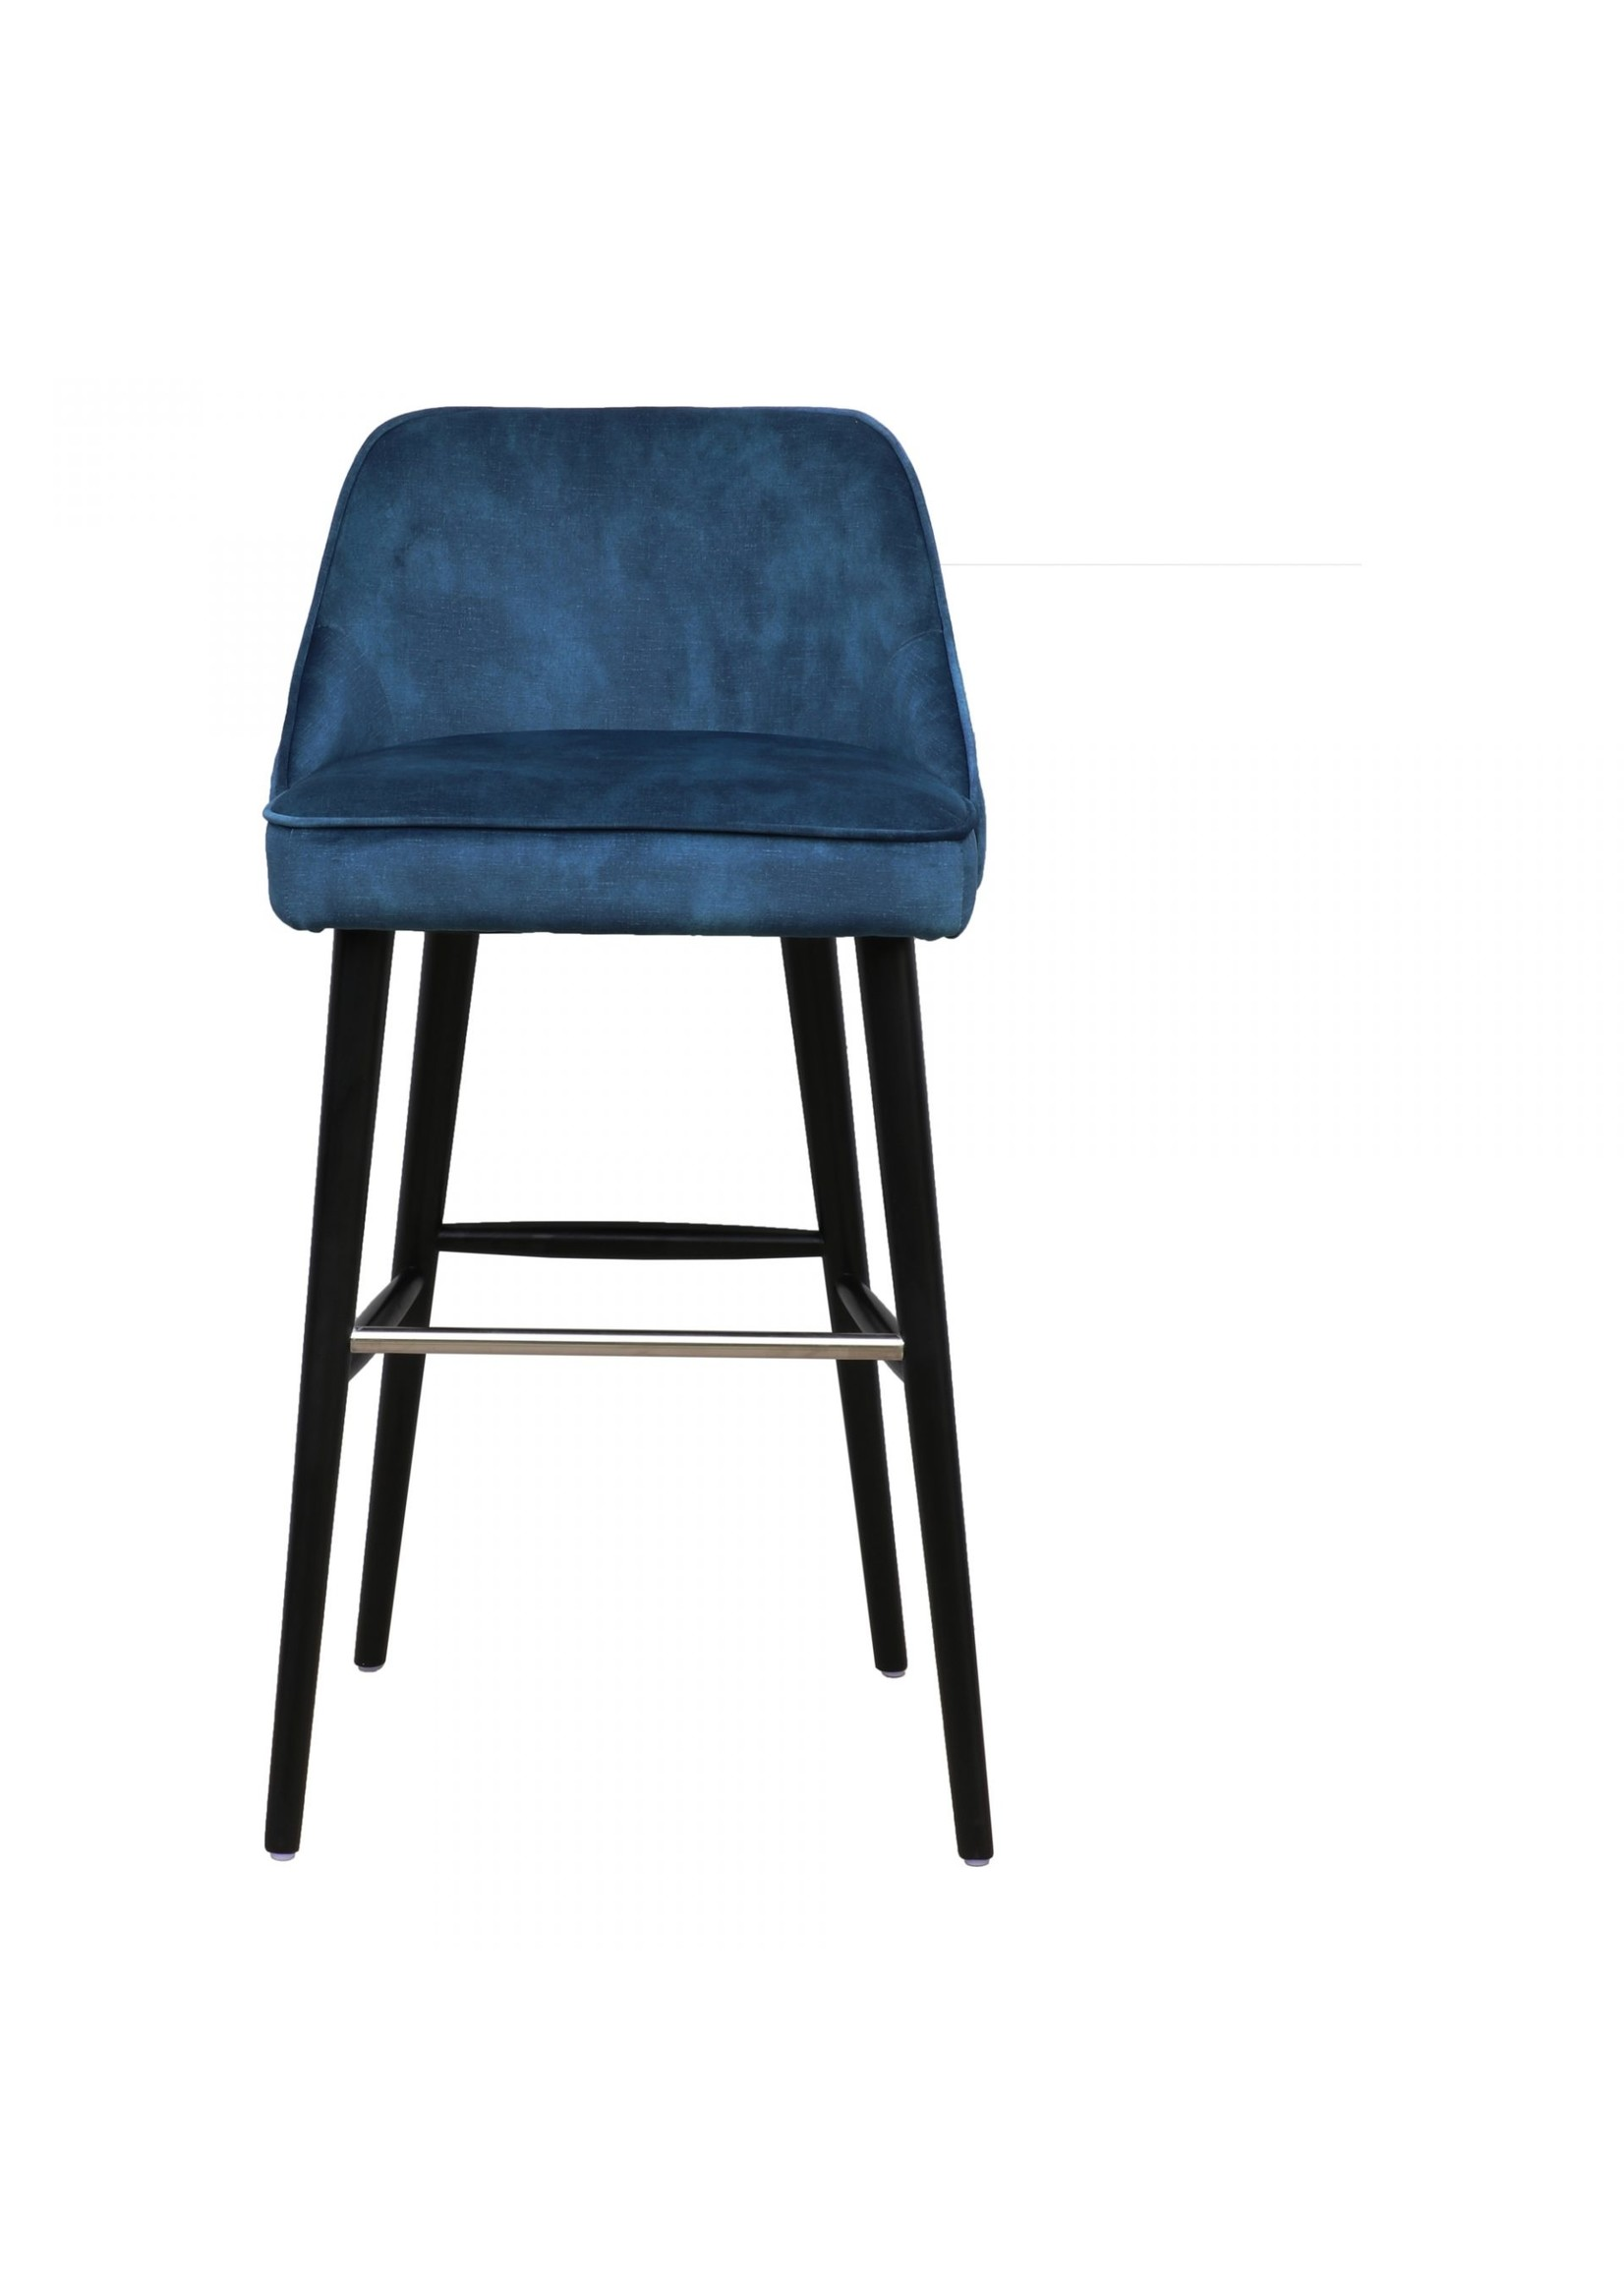 Moes Home Collection Harmony Barstool Navy Blue by MOES